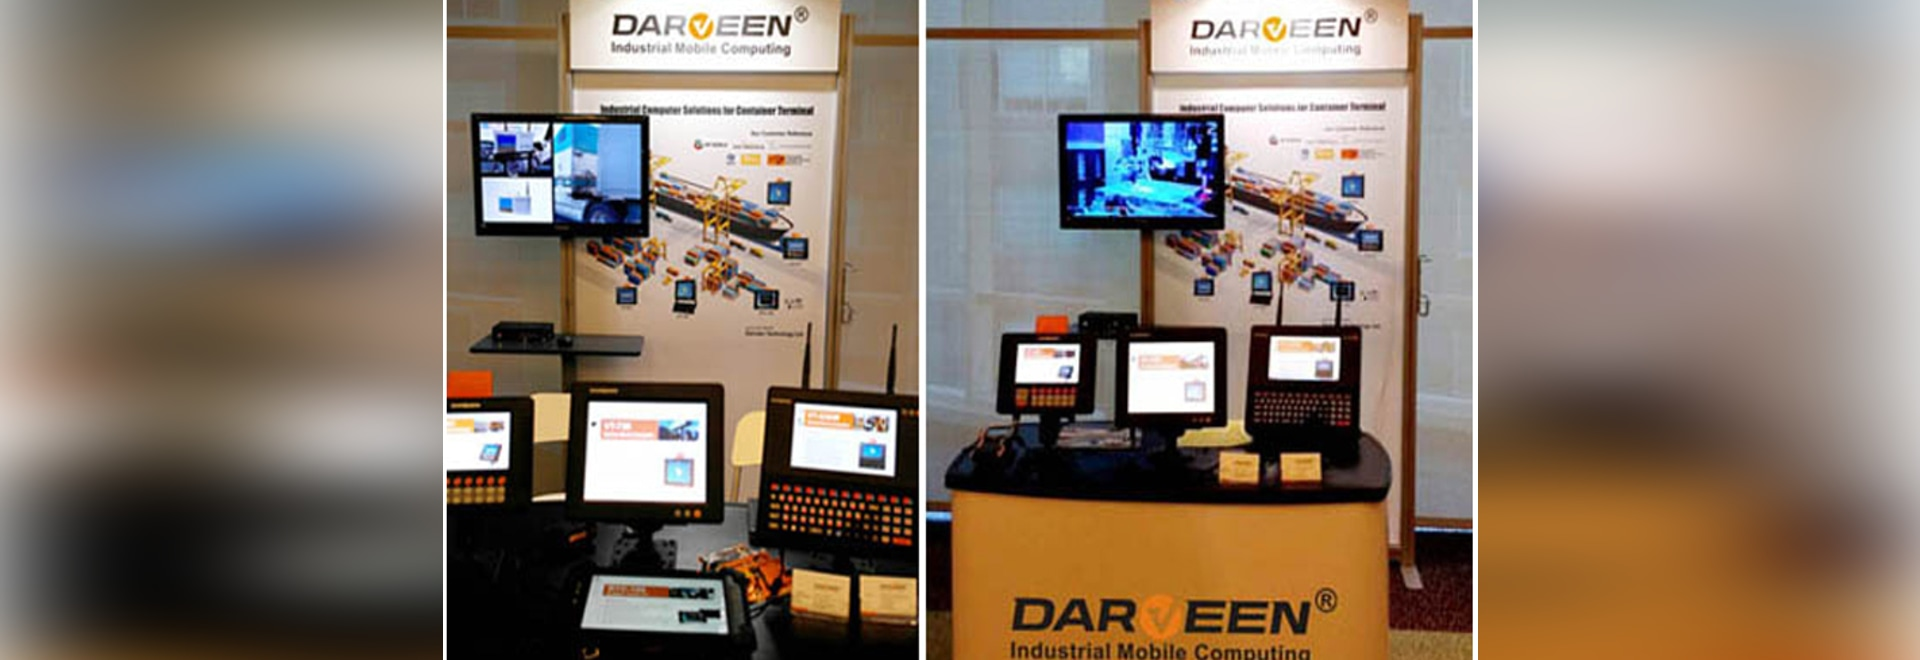 Darveen Attended Exhibition 2015 in U.S.A